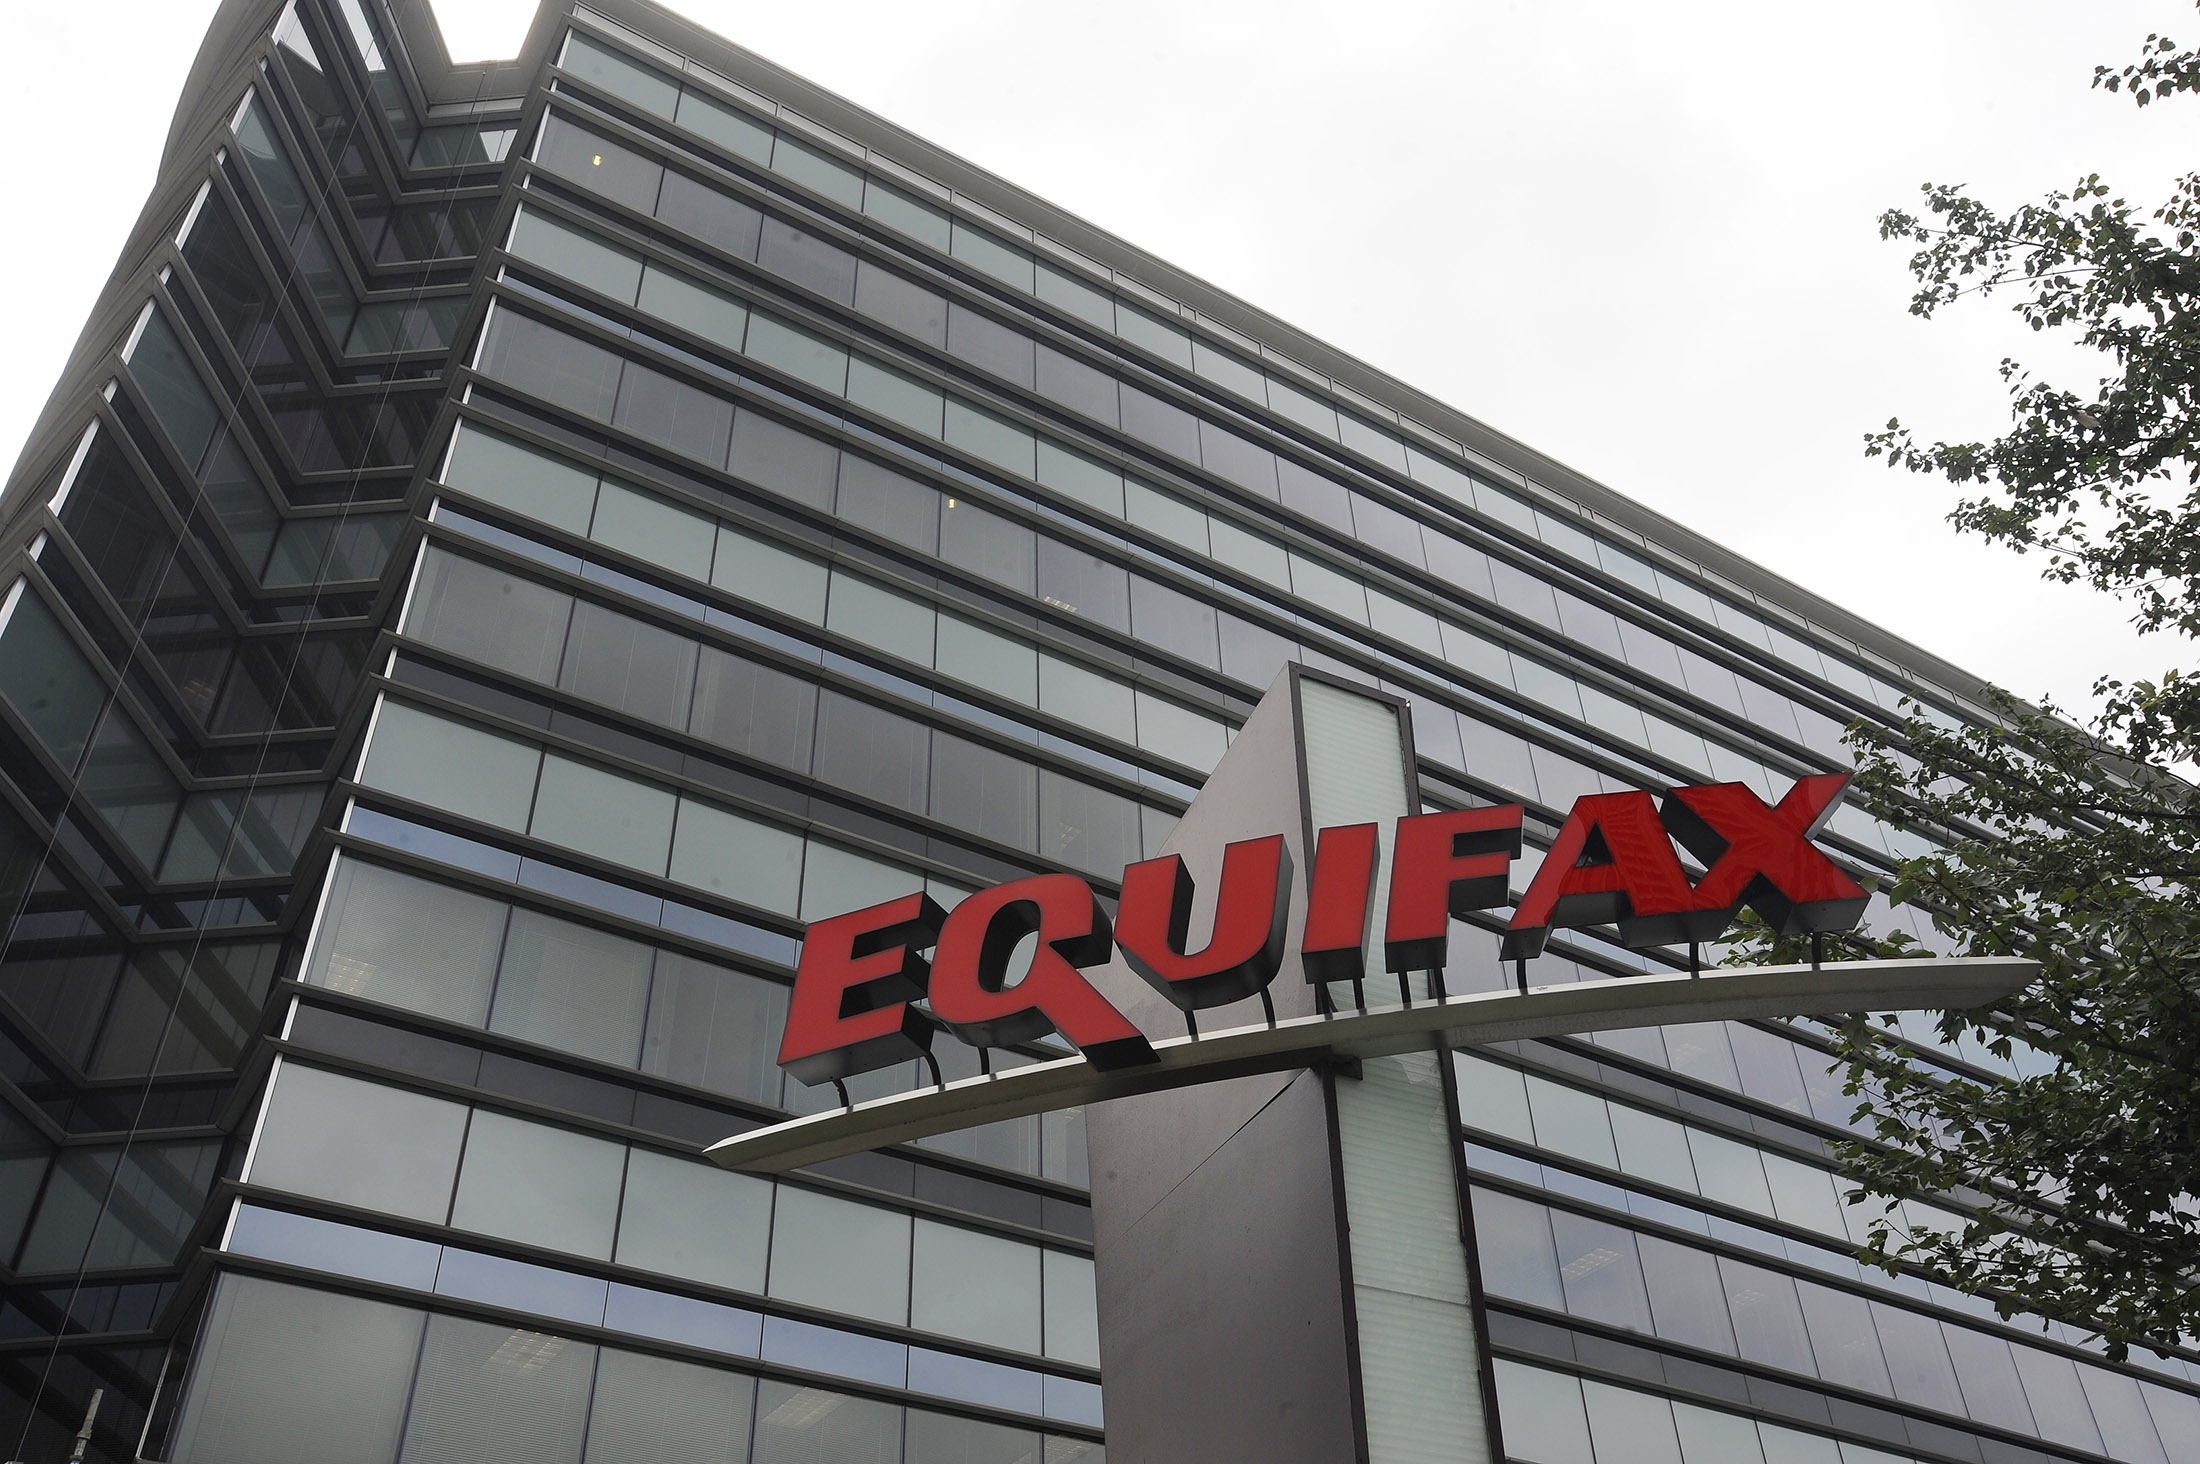 Equifax's Hacking Nightmare Gets Worse Thanks to Arbitration Clause